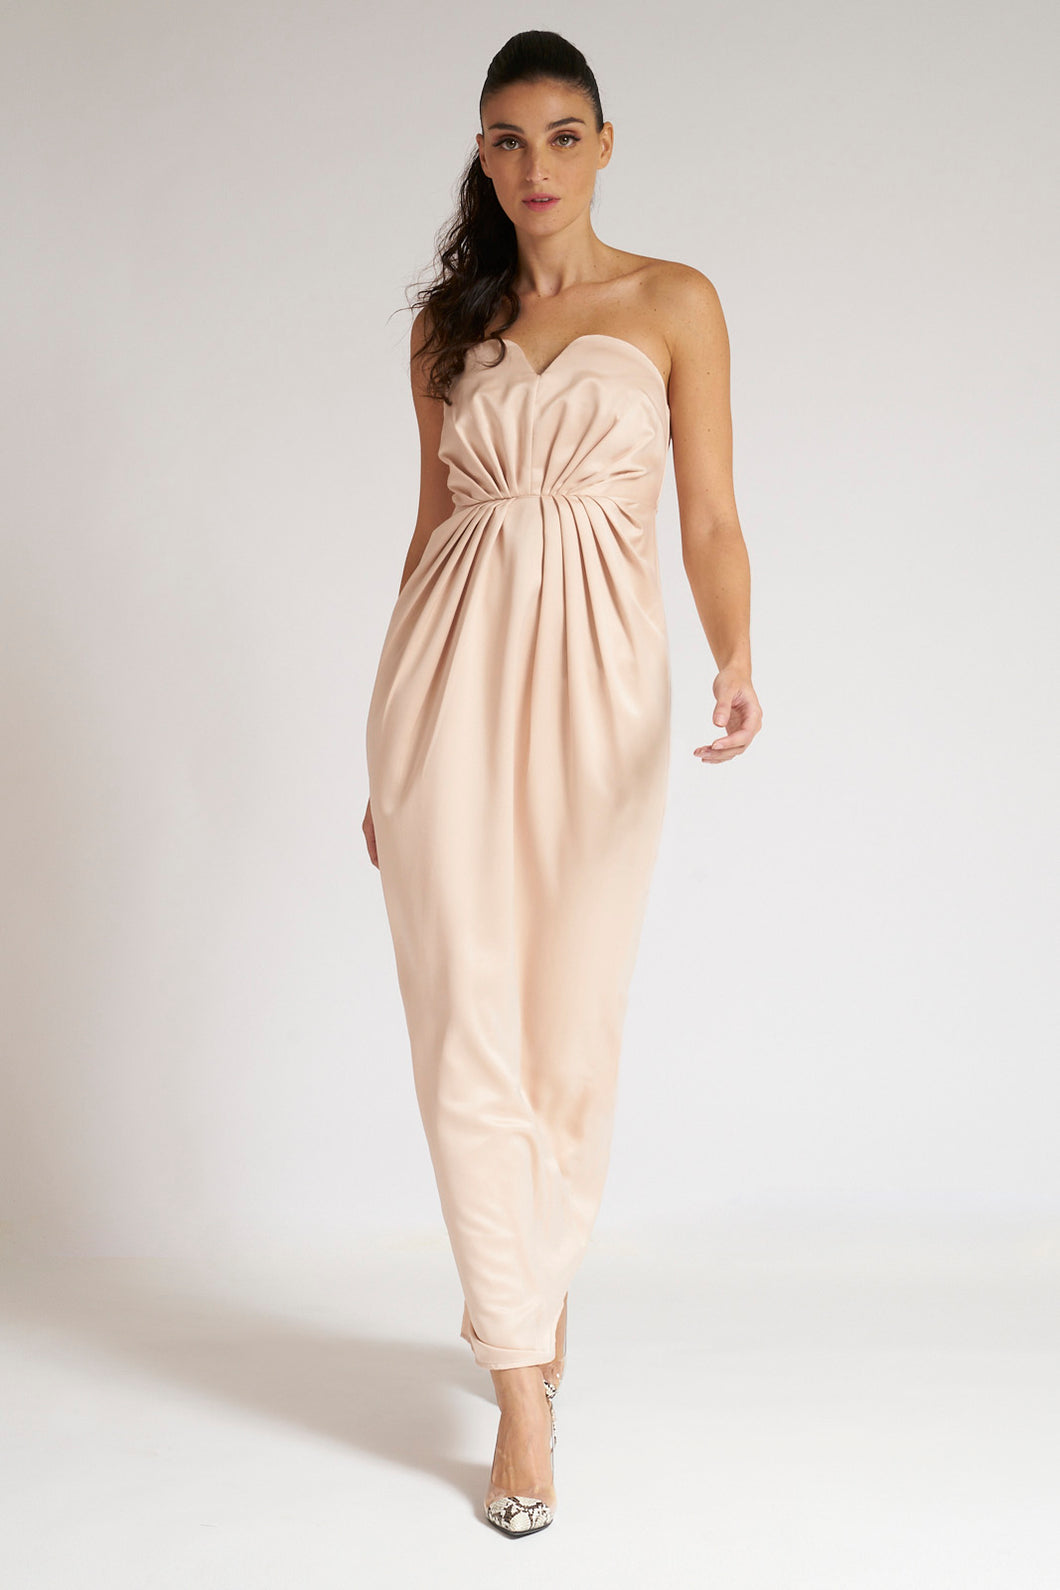 Blush Satin Bandeau-Top Maxi Dress